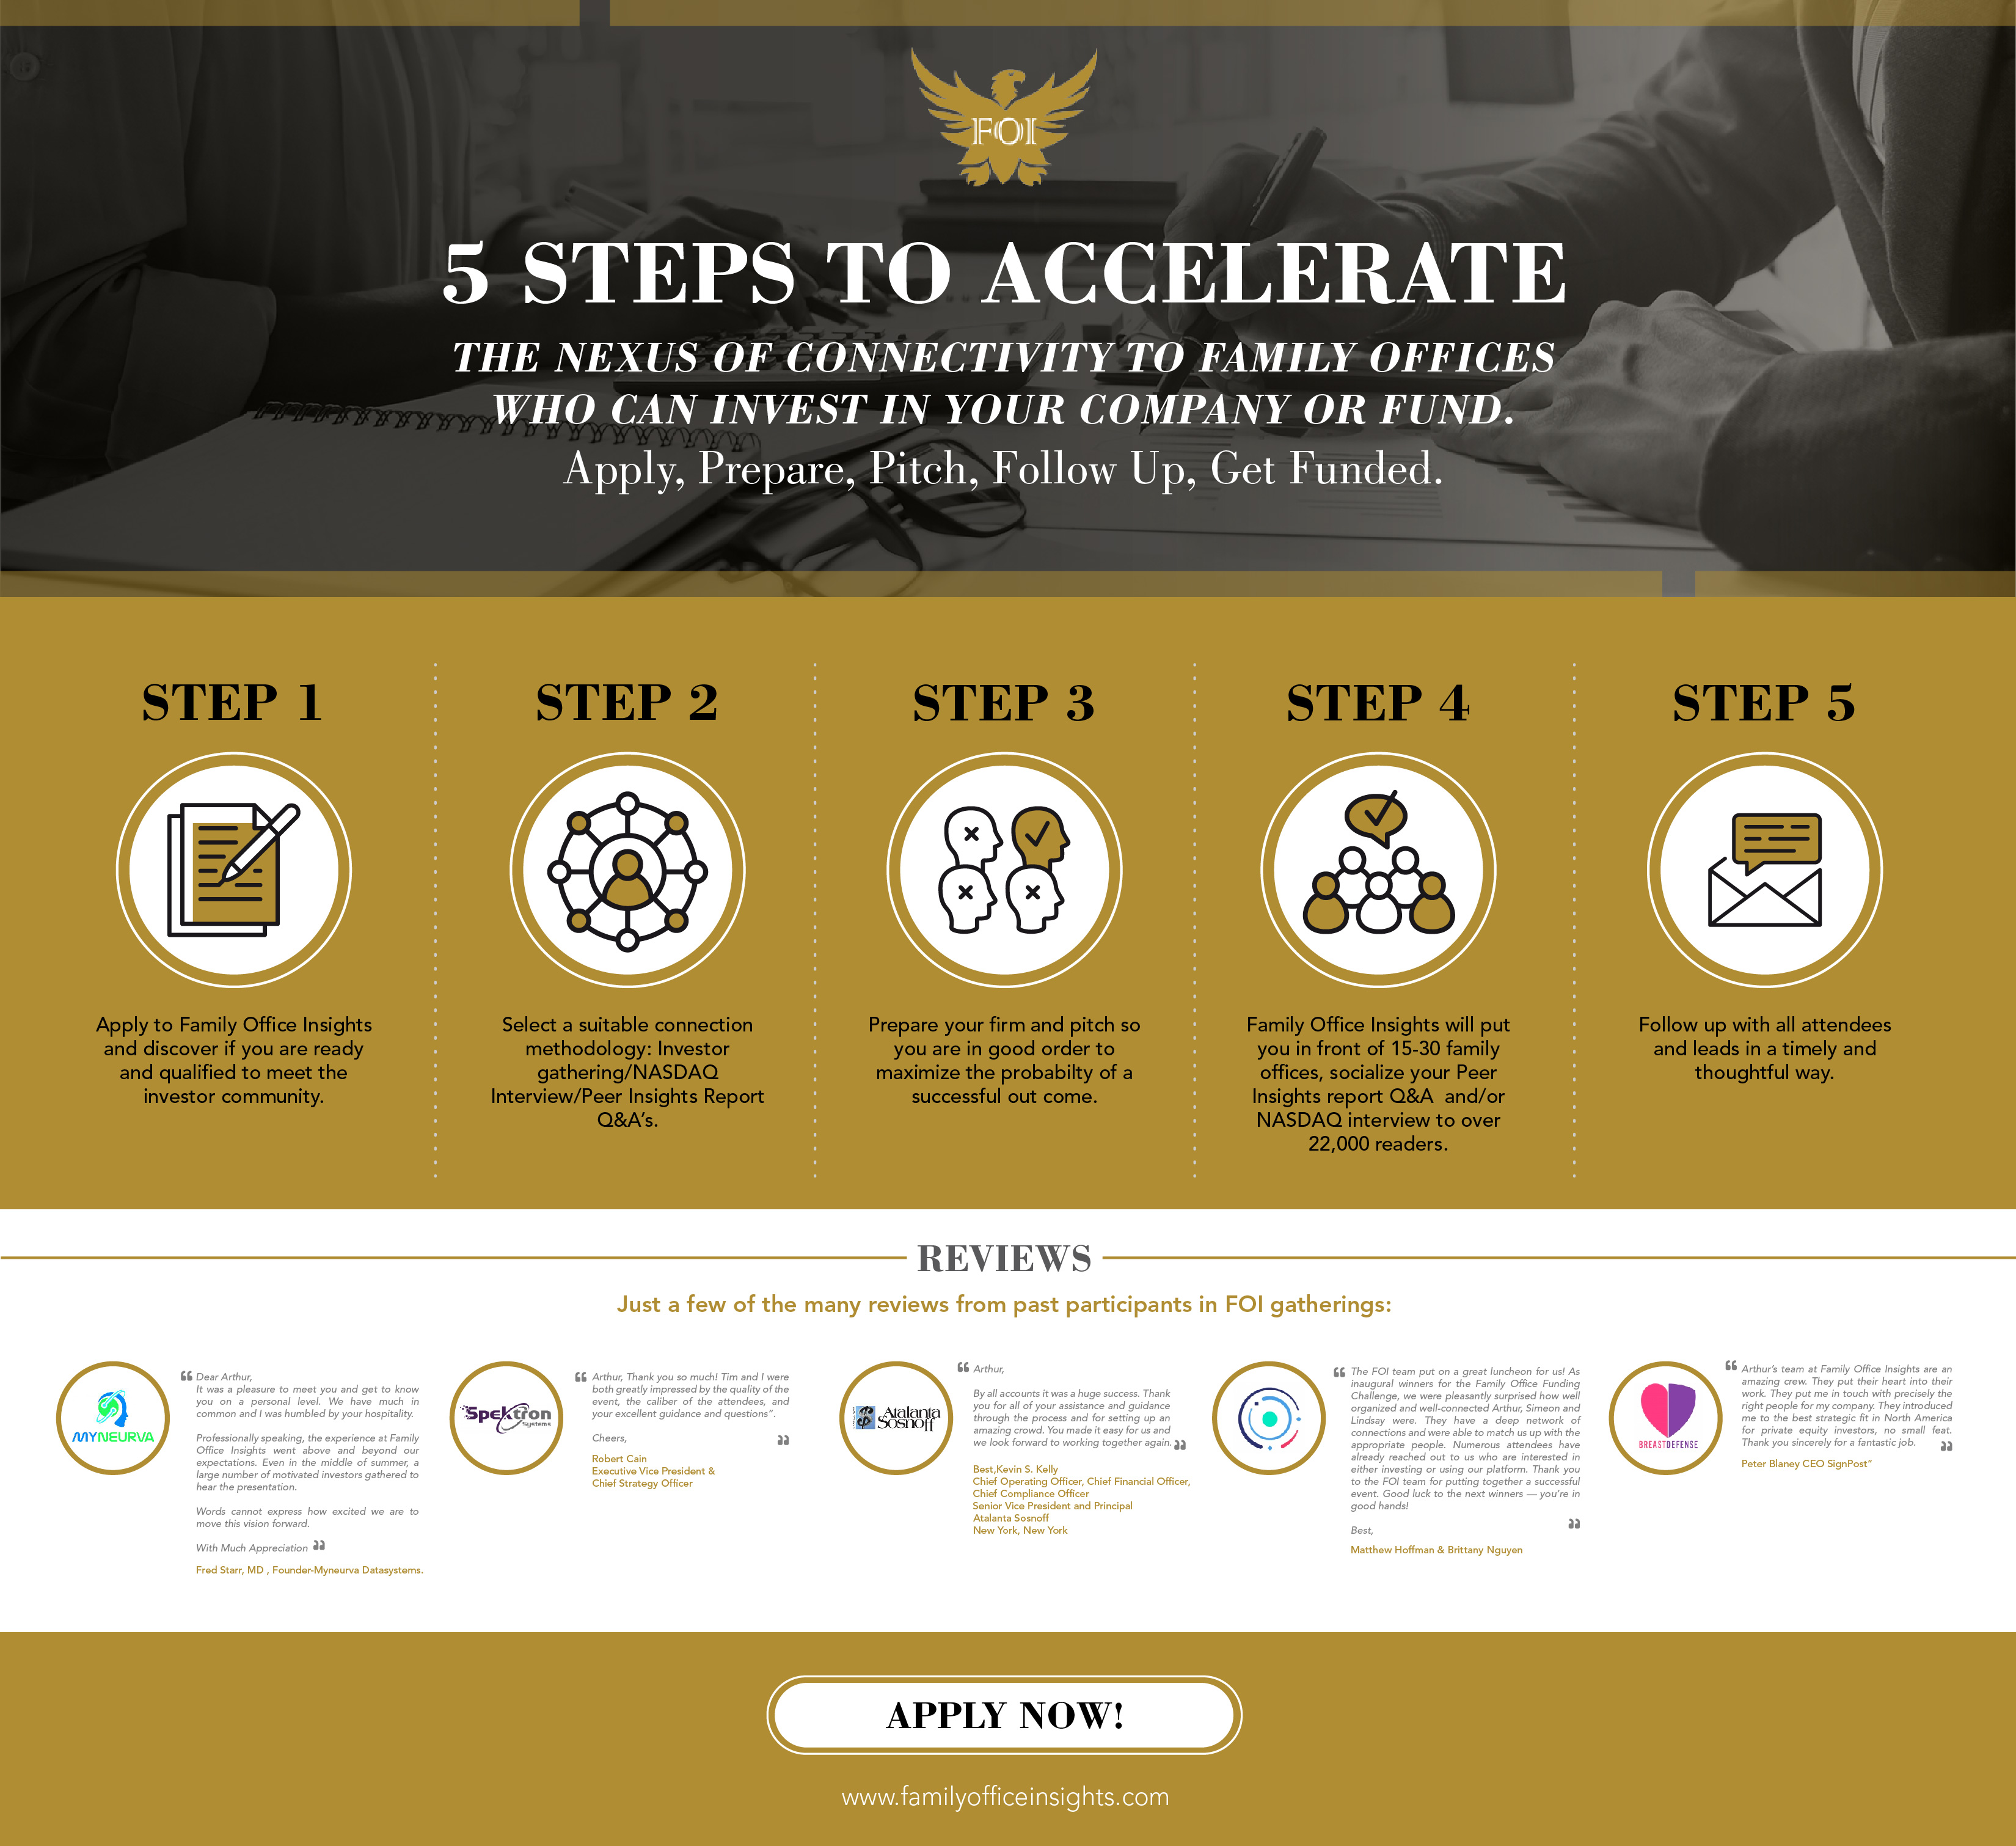 United Nations Dining Room: Arthur Andrew Bavelas Revealing 5 STEPS TO ACCELERATE THE